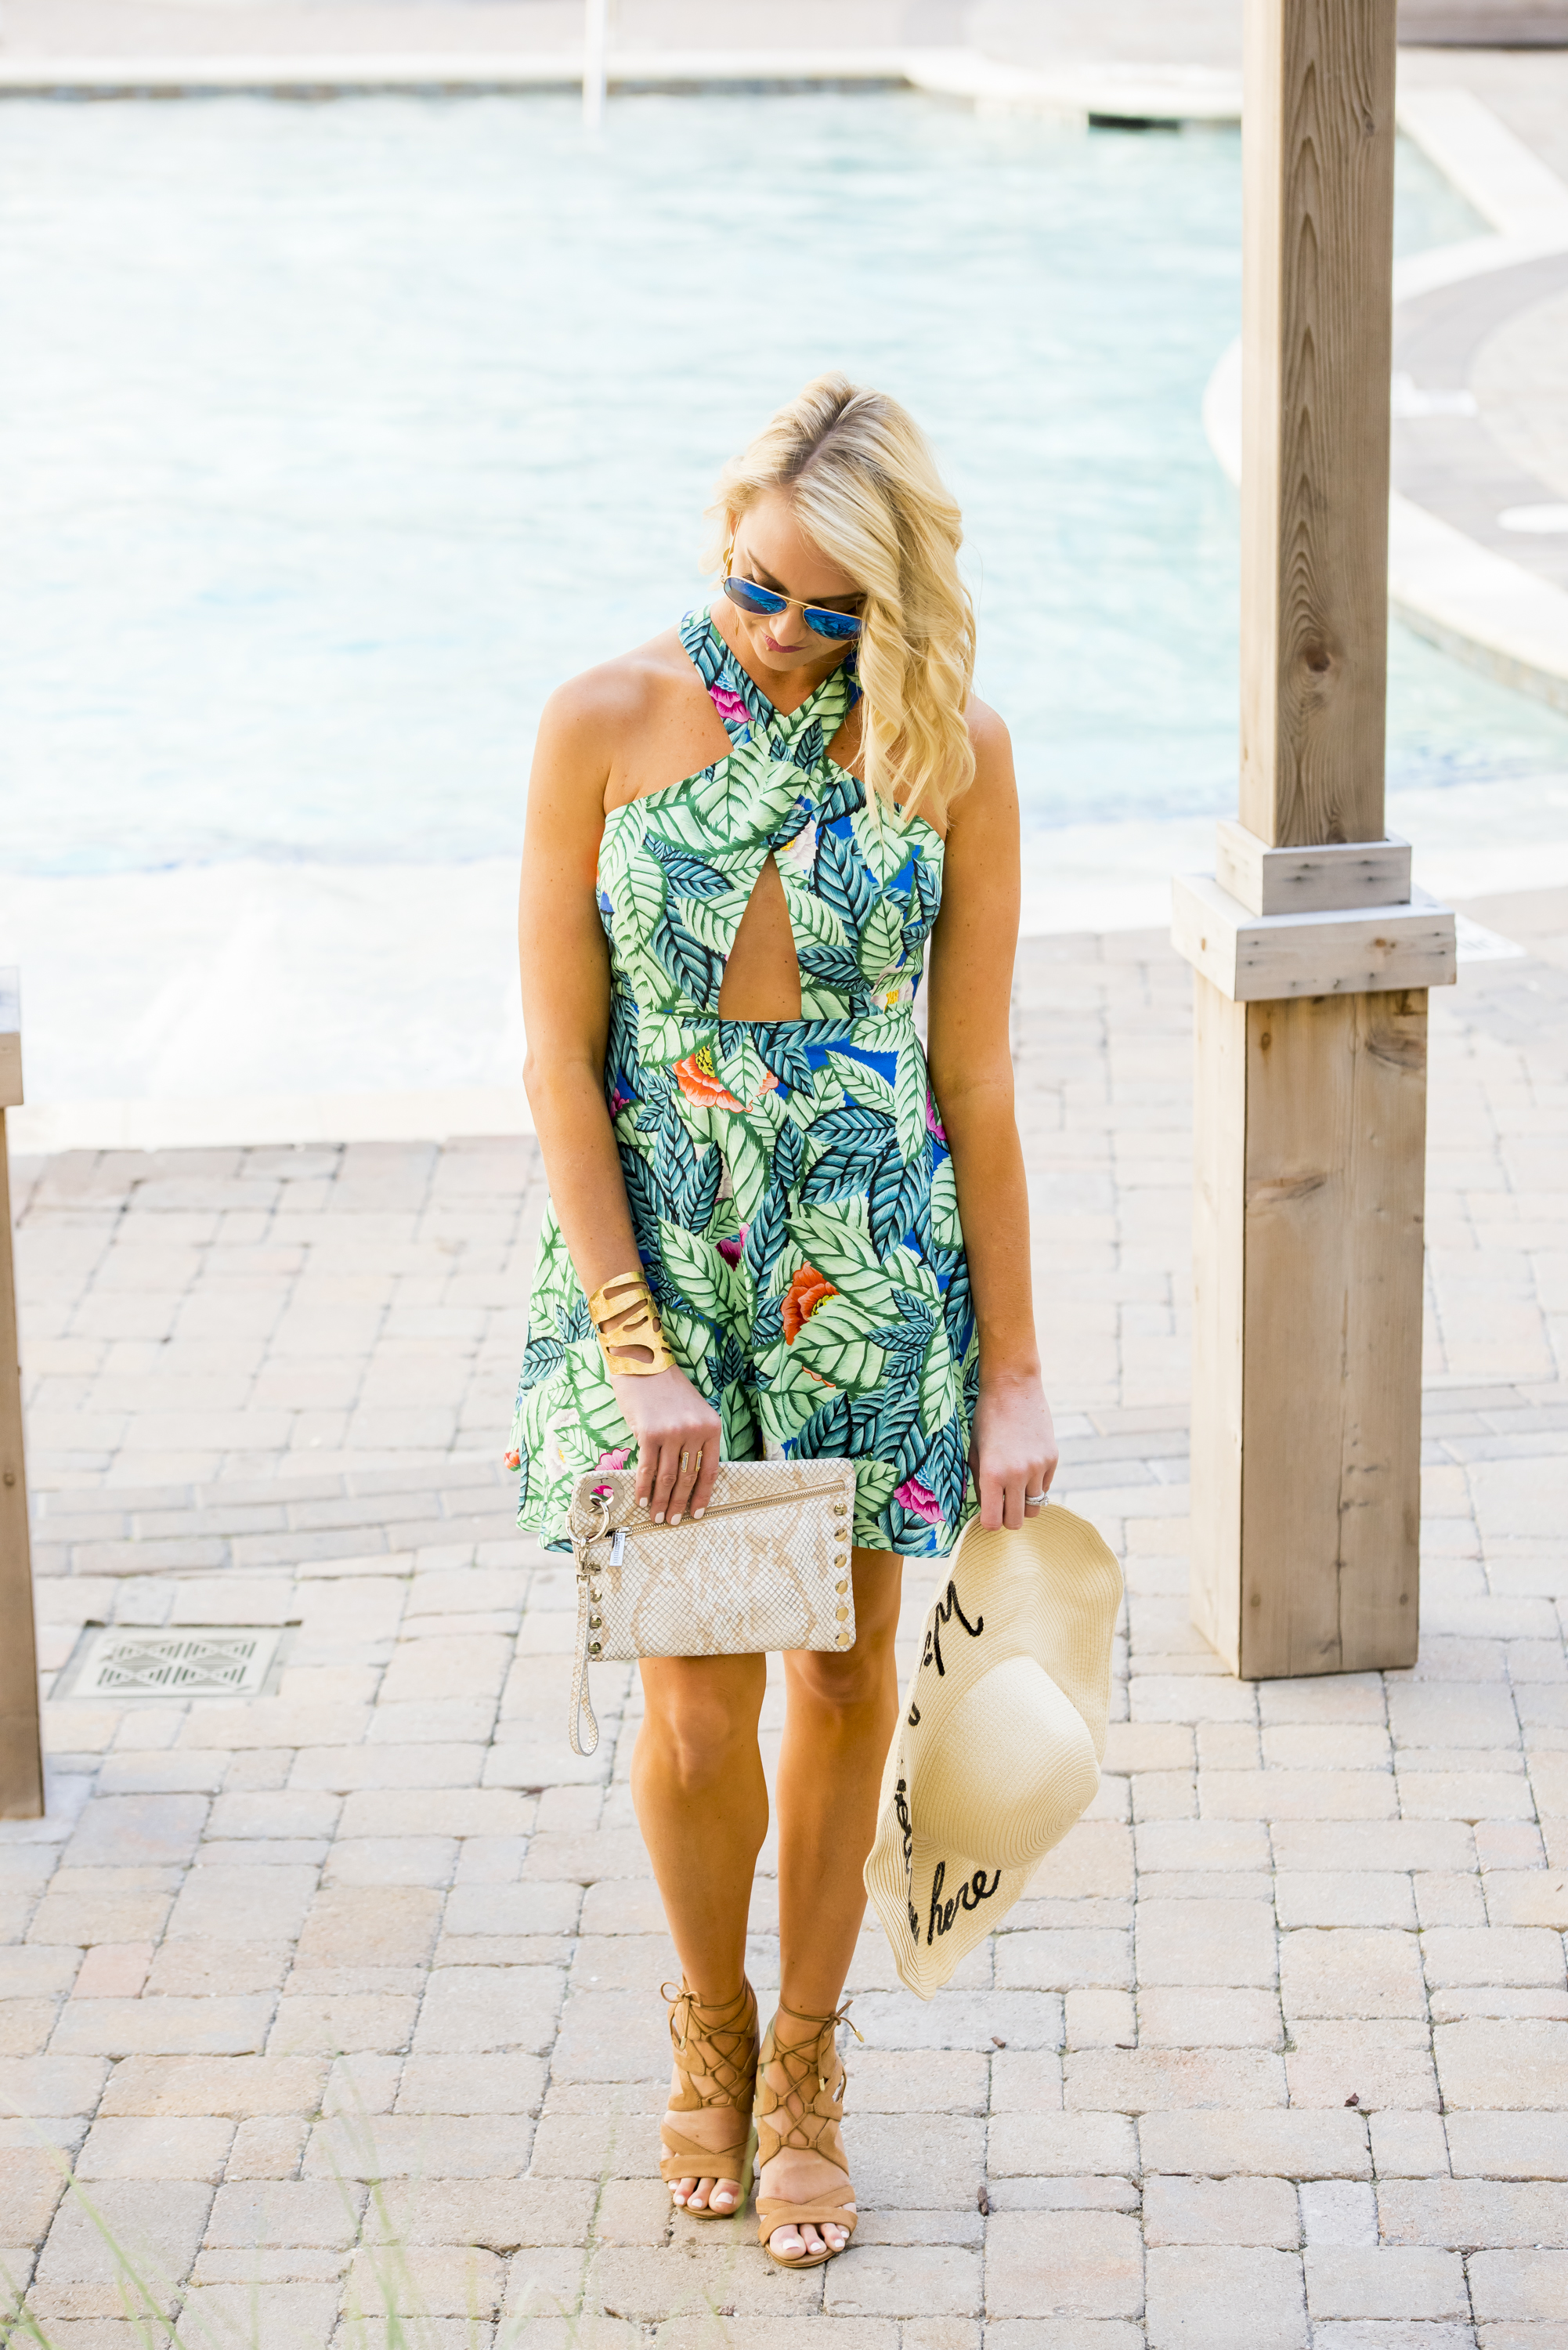 a9eb054bbfa3 Mara Hoffman Cross Front Mini Dress / Molly Ring / Ray Ban Aviators /  Hammitt LA Nash Bag. ""